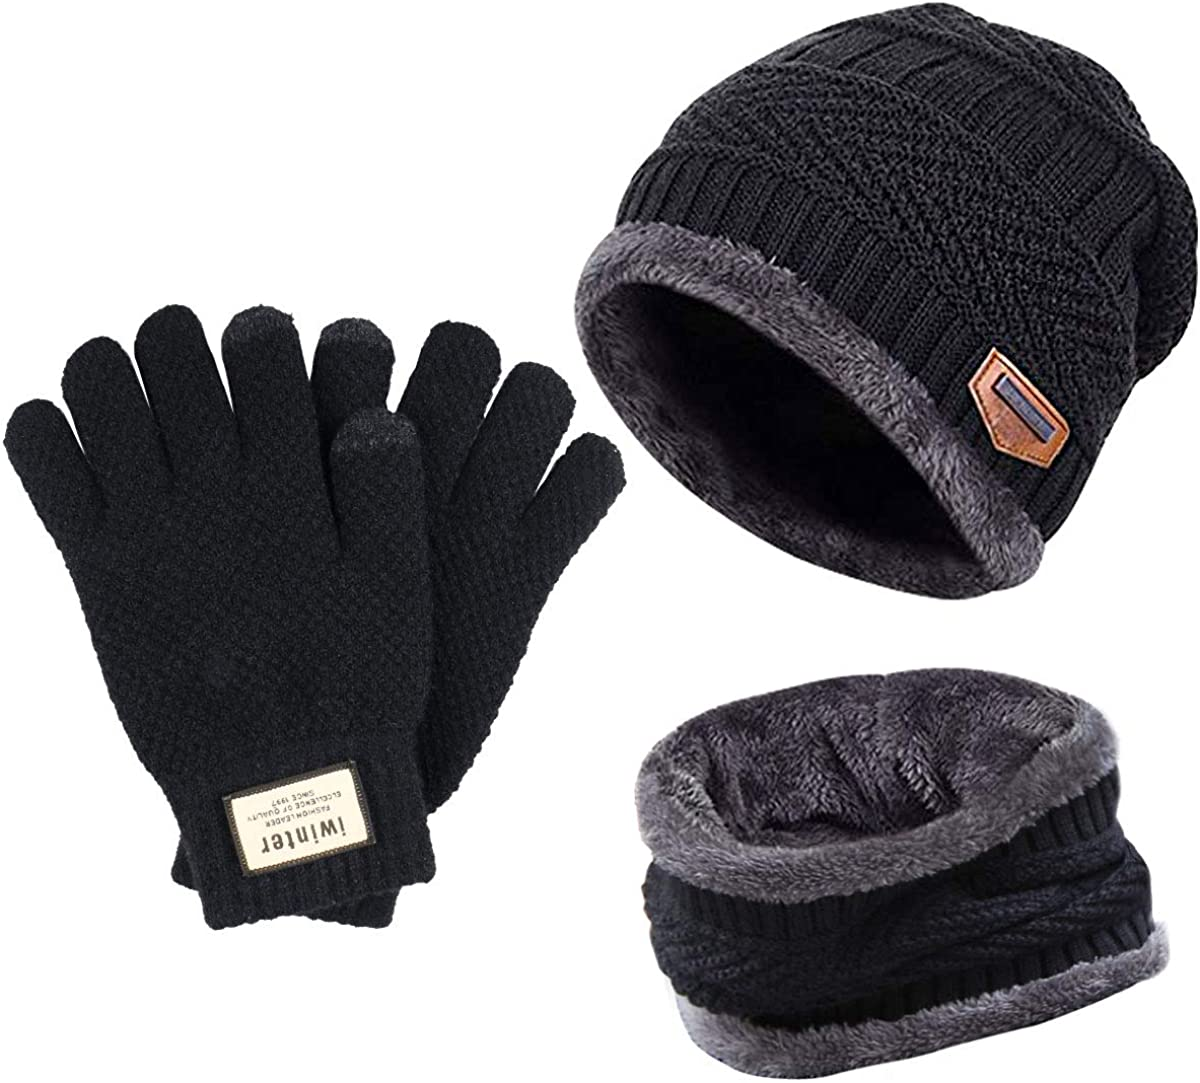 Fostoy Men's Winter Hat, Winter Knit Warm Beanie Hat, Soft Comfortable Hat Scarf Set for Men and Women with Fleece Lining (Black)